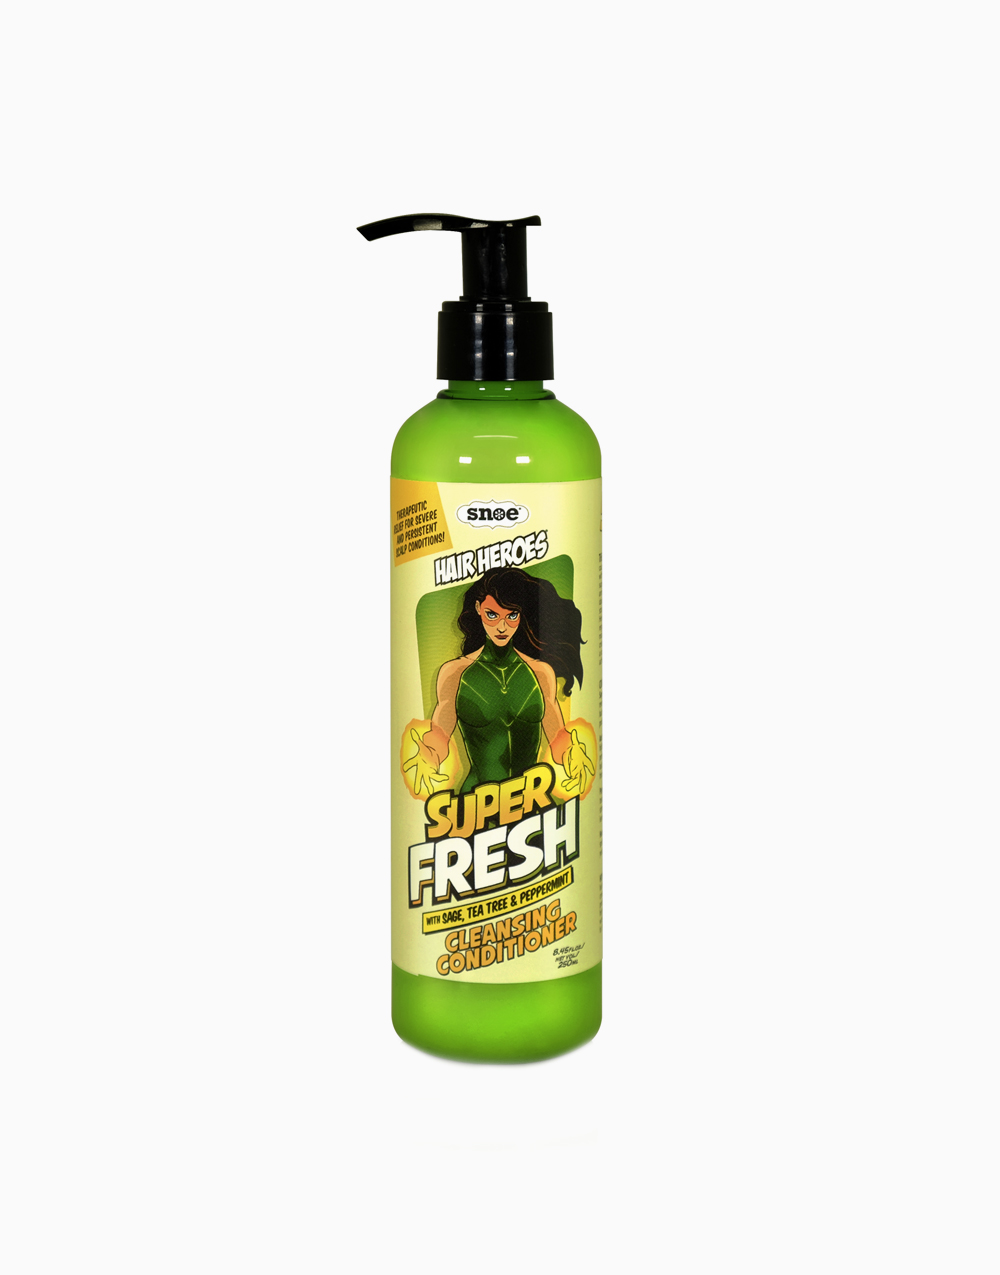 Hairheroes Super Fresh 5 in 1 Cleansing Conditioner by Snoe Beauty